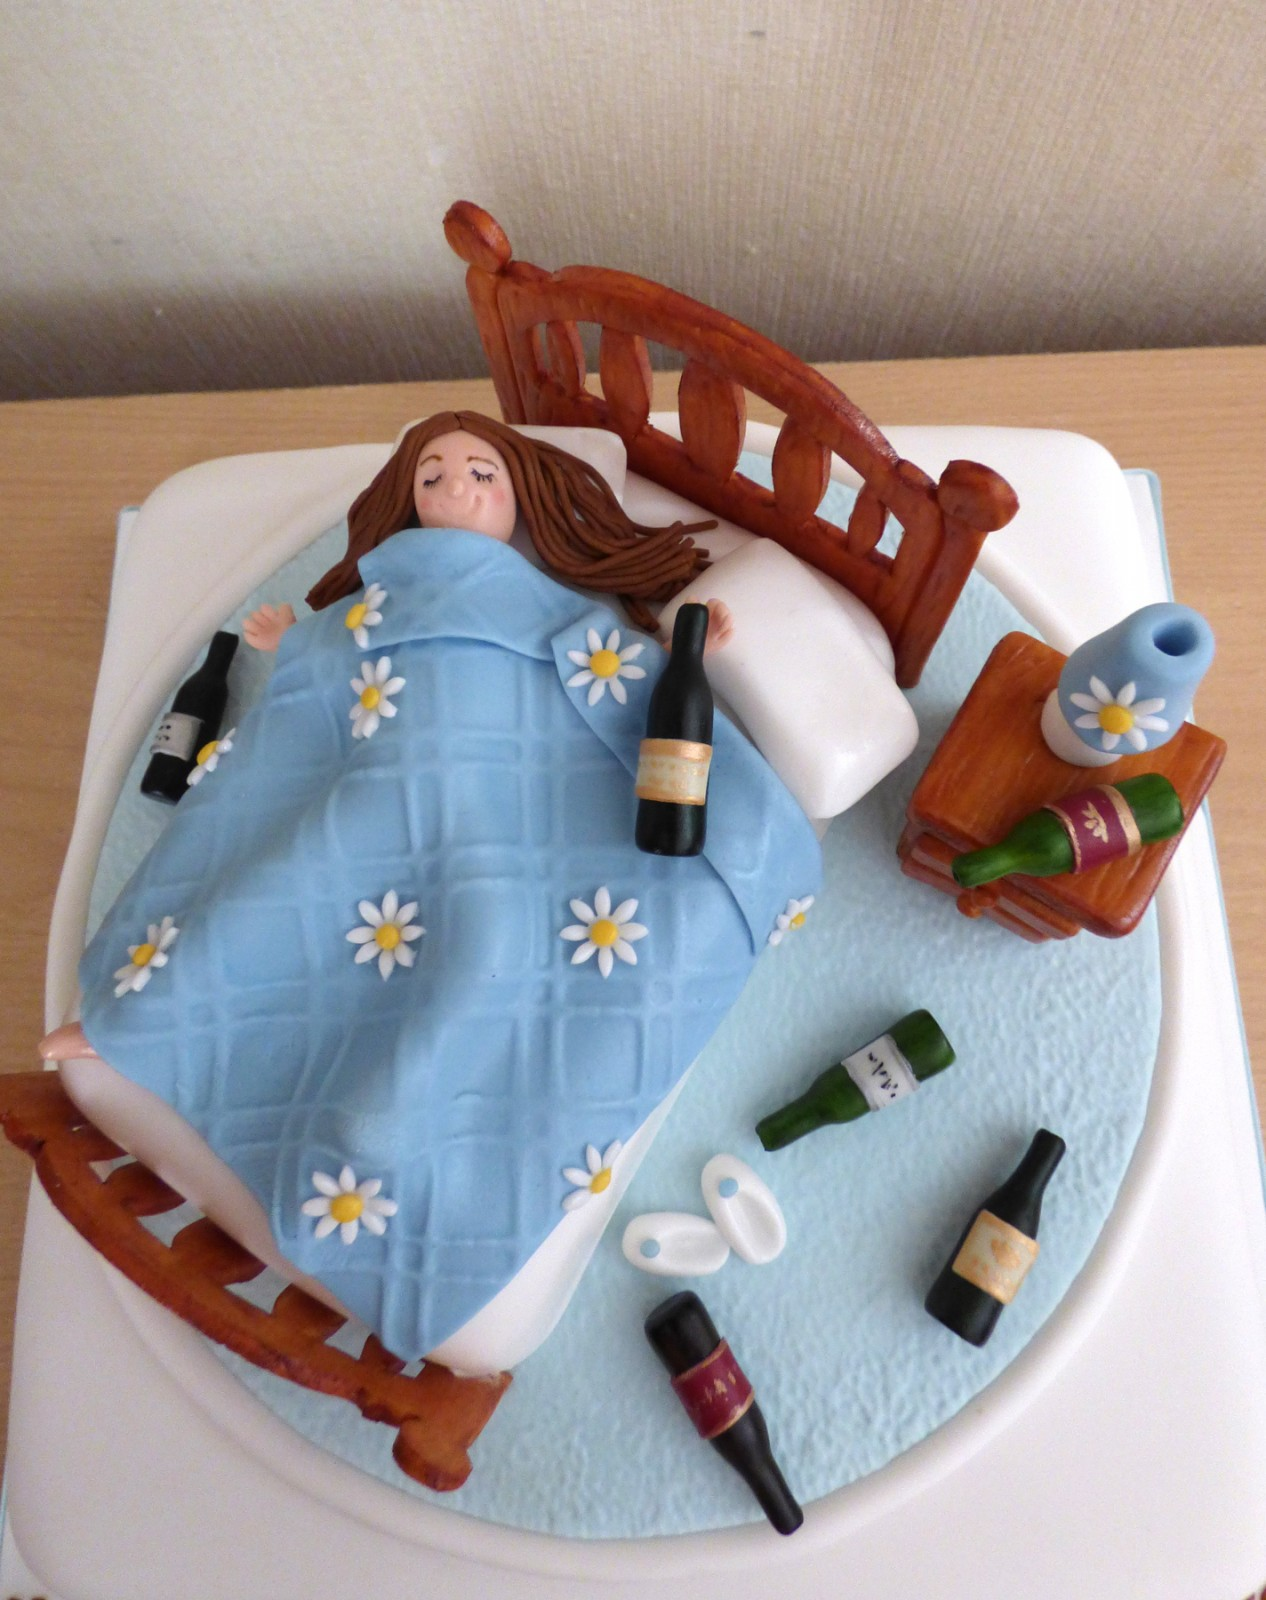 Incredible Drunk In Bed 40Th Birthday Cake Susies Cakes Personalised Birthday Cards Arneslily Jamesorg